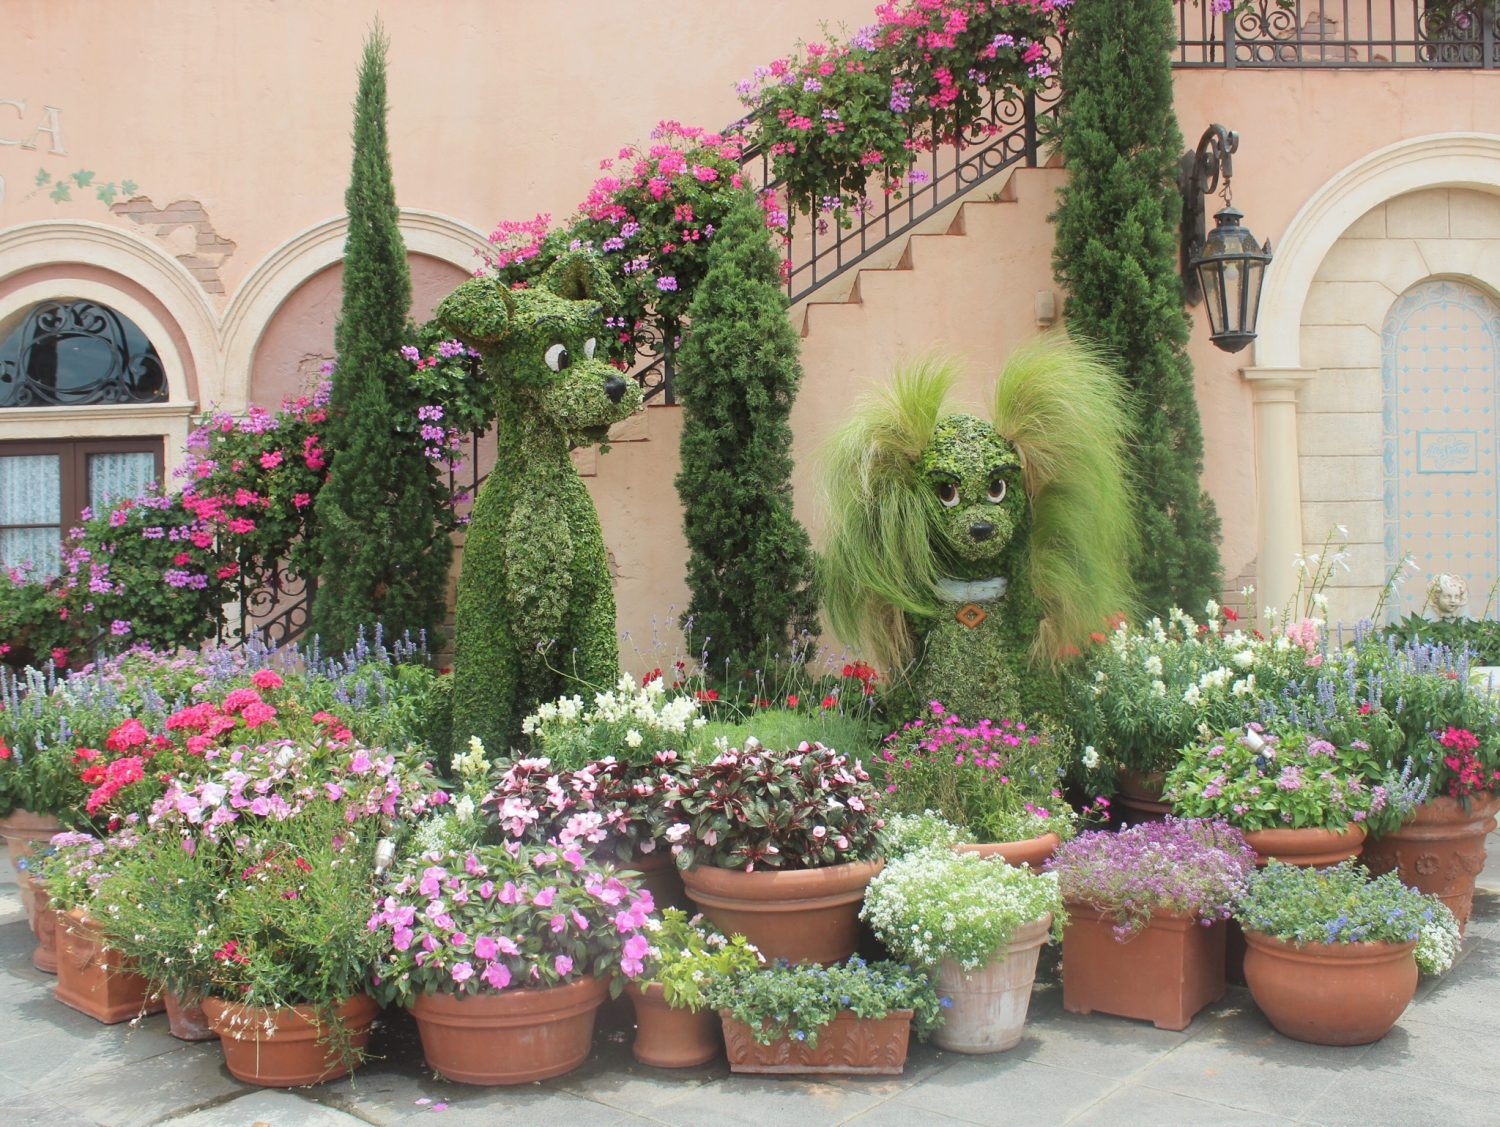 Epcot International Flower and Garden Festival Lady and the Tramp